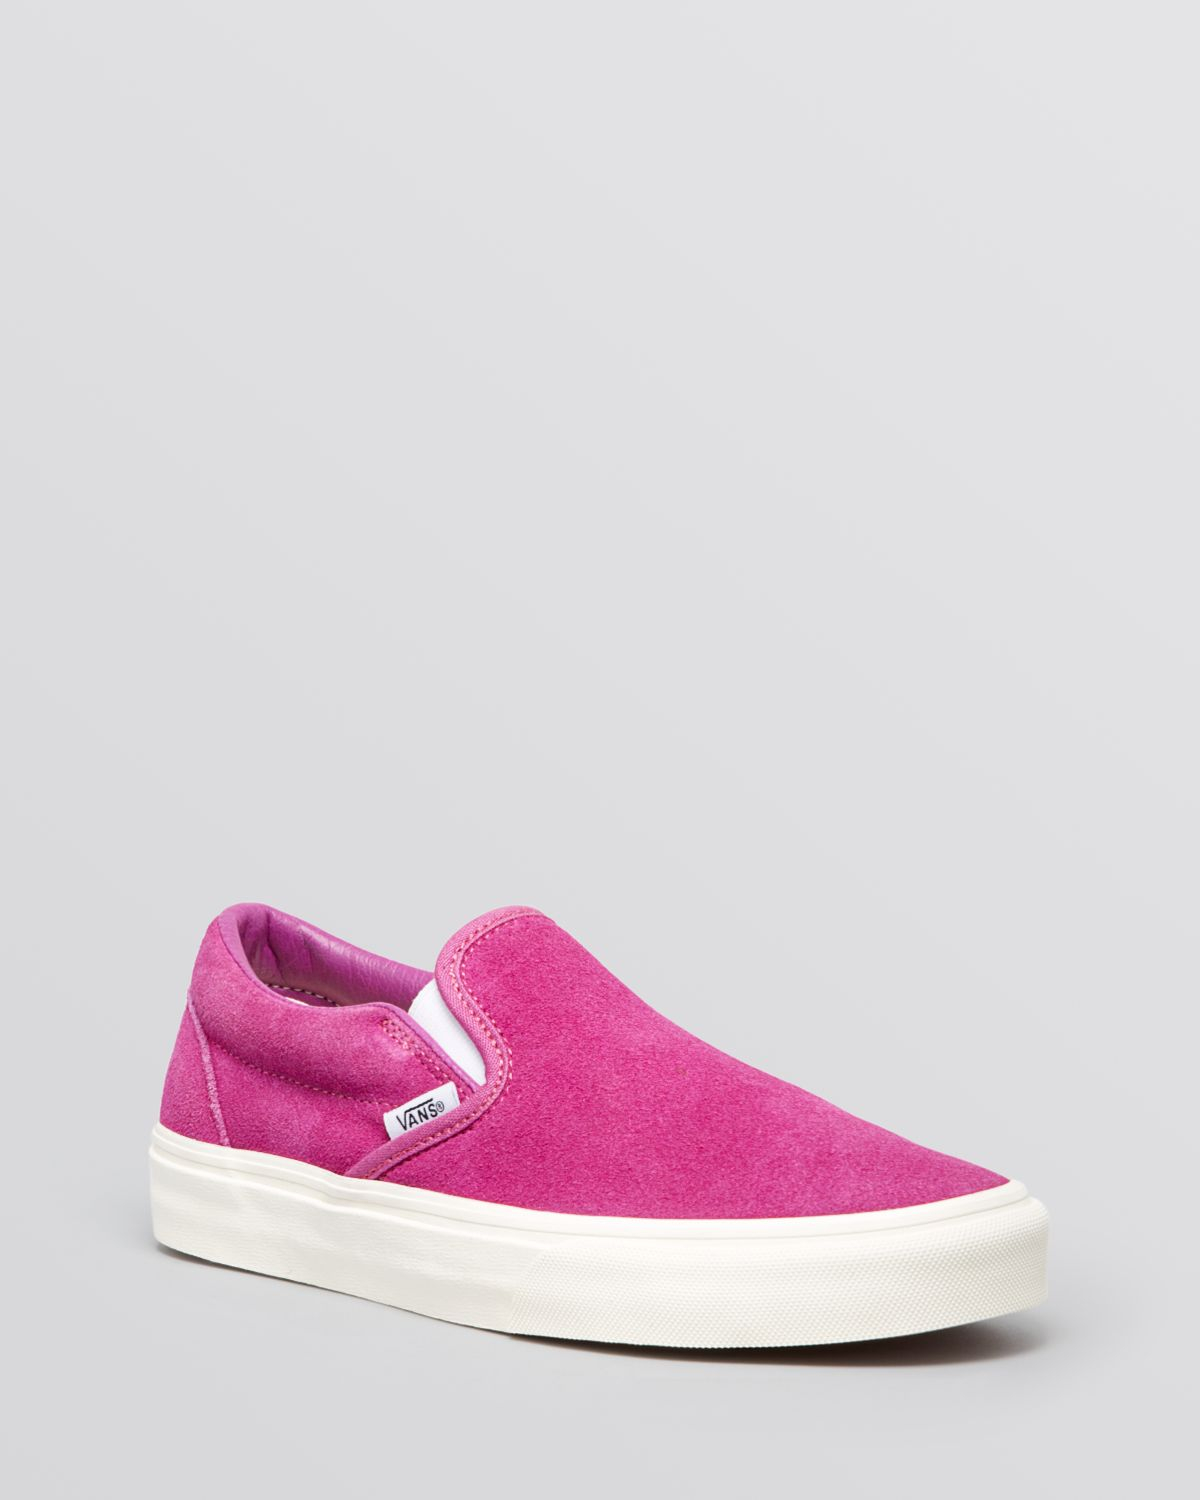 Lyst - Vans Flat Slip On Sneakers - Vintage Suede Classic in Pink a83f0fa7f